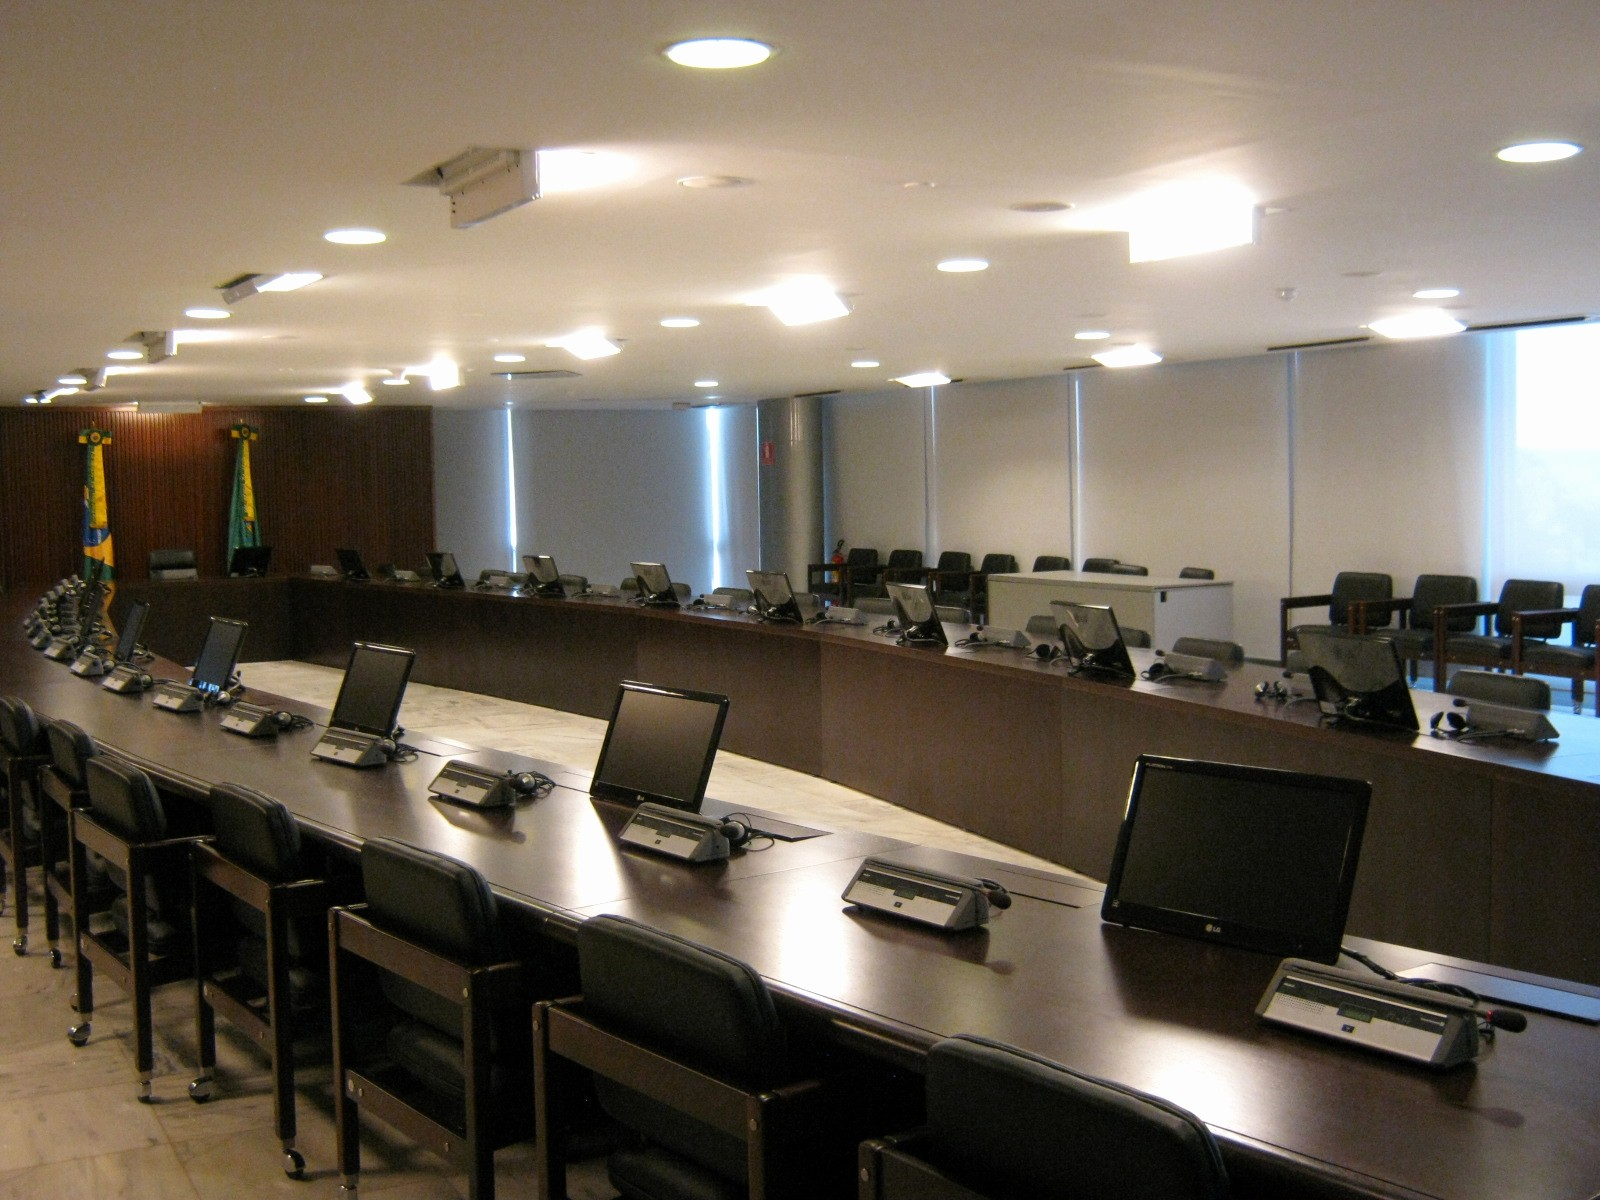 At Meeting or In Meeting Awesome 4 Reasons Your Meeting Room Setup Should Look More